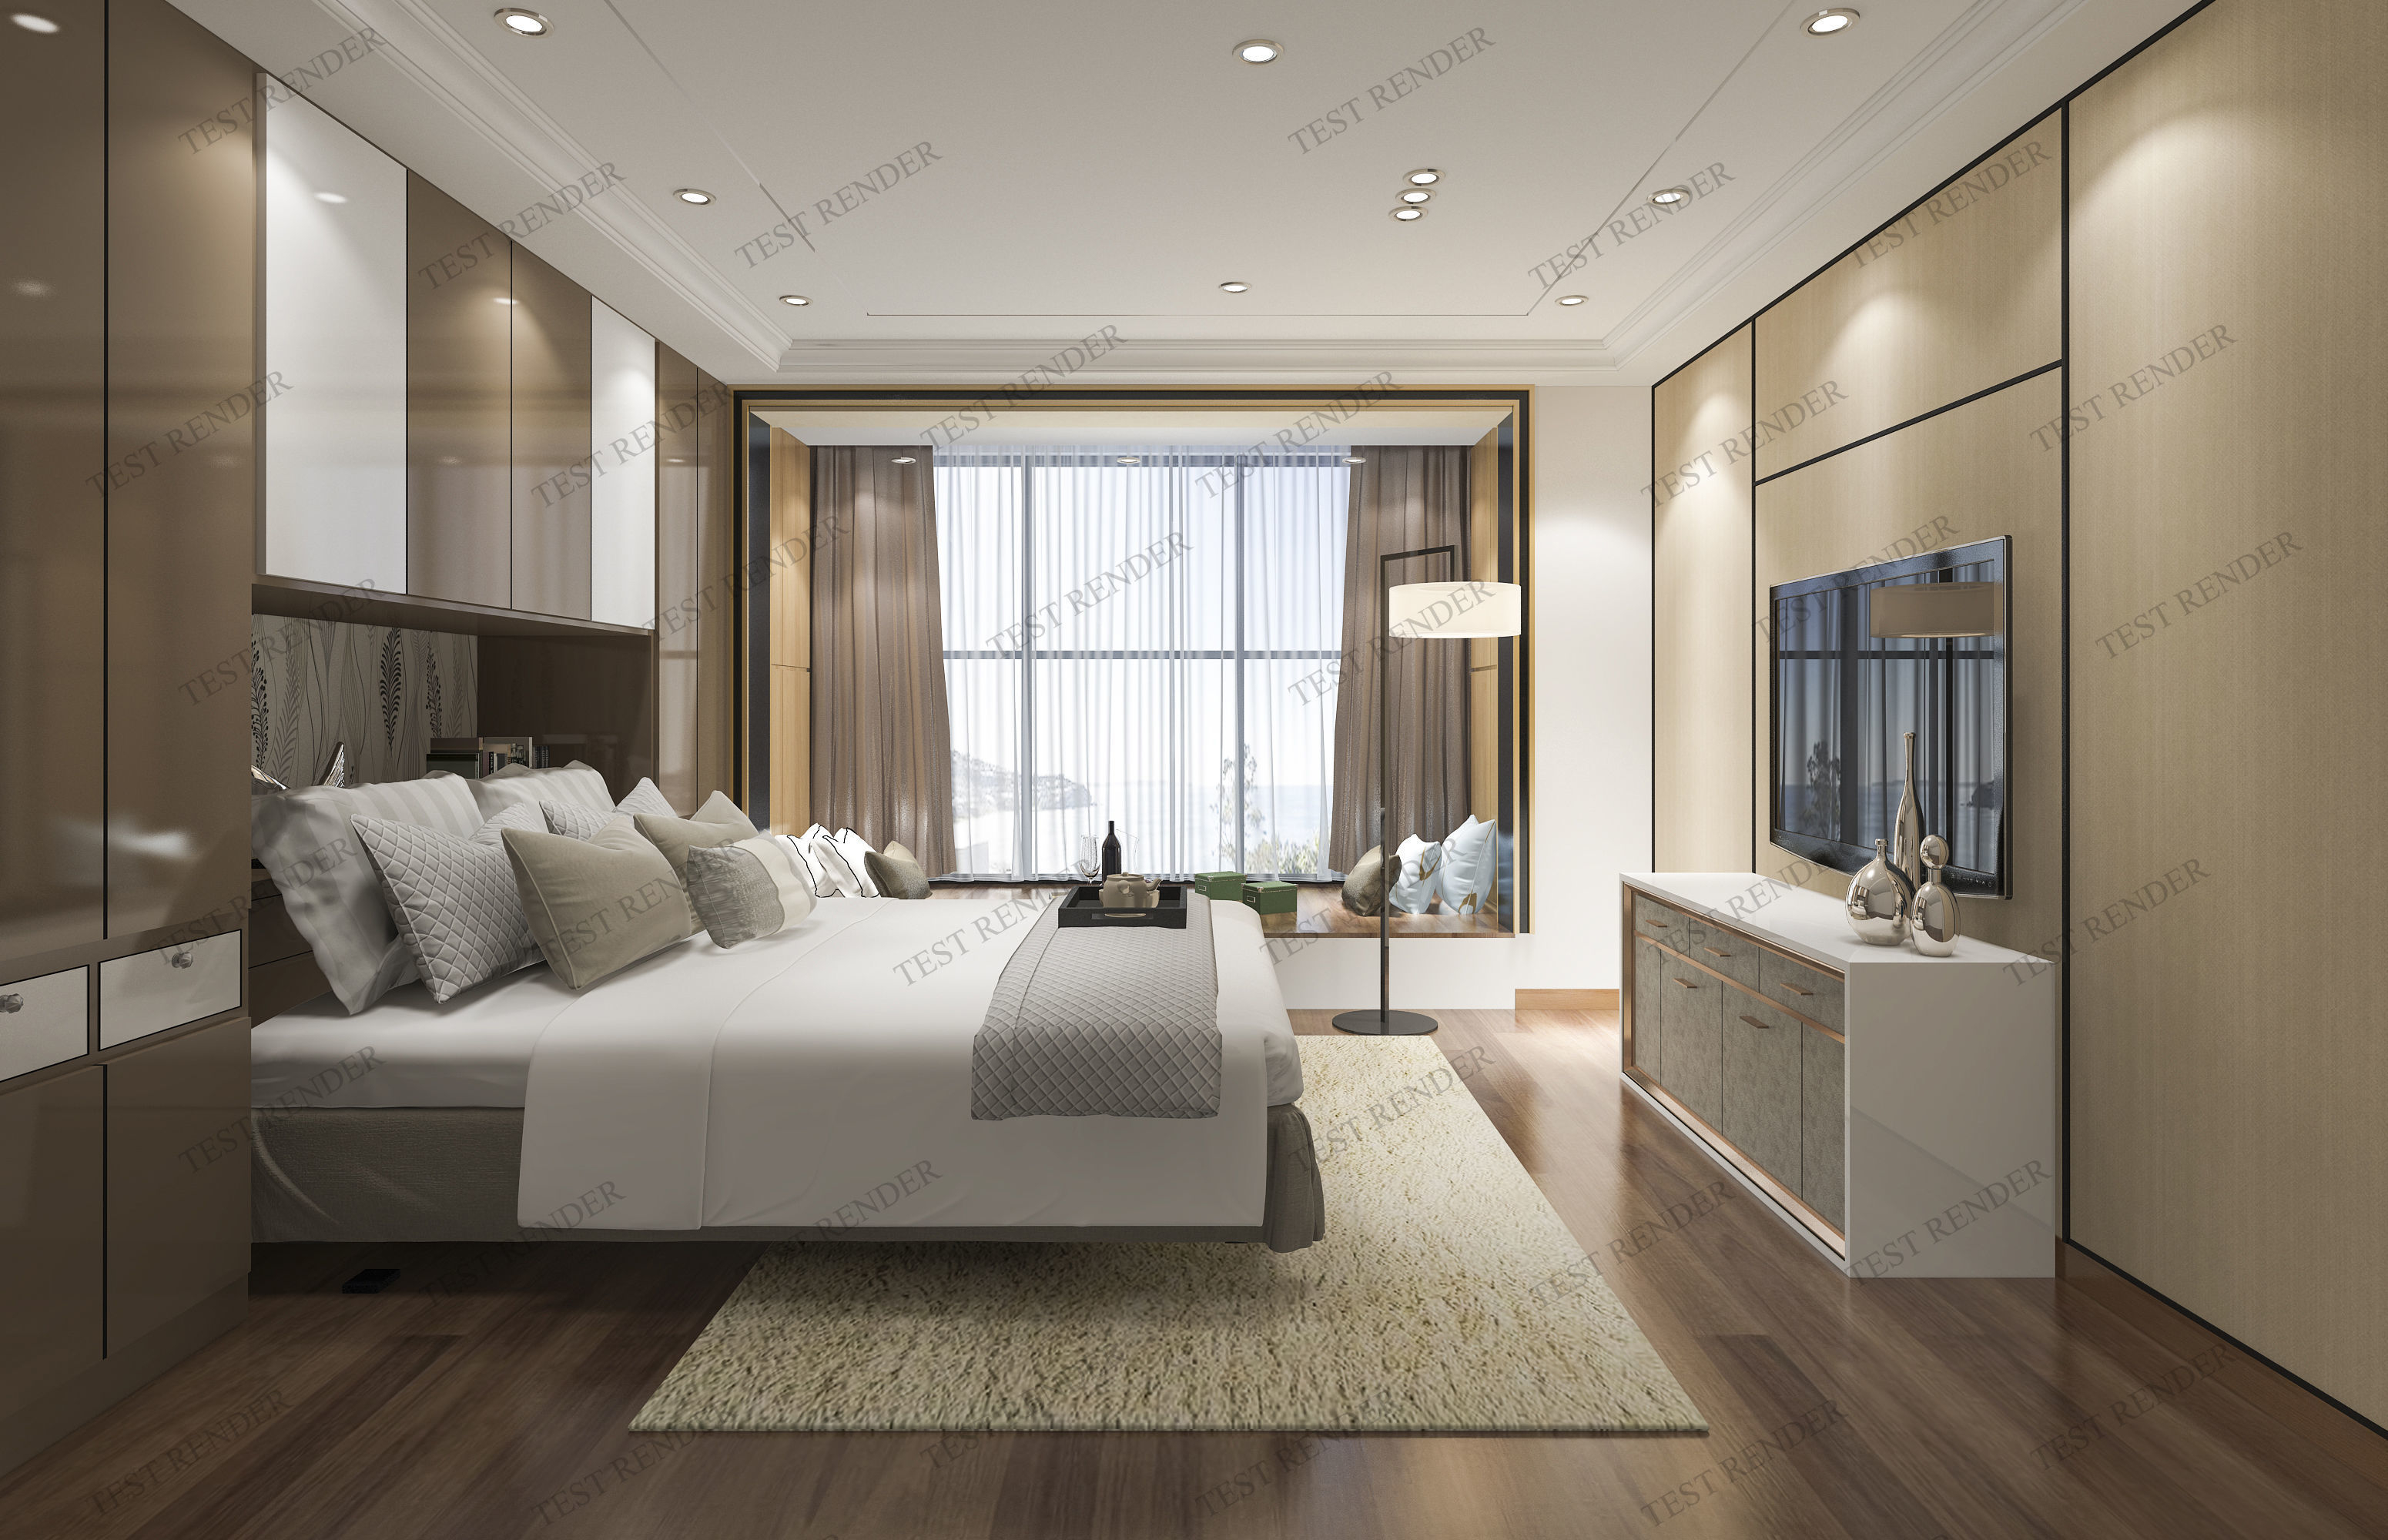 Luxury Modern Bedroom Suite In Hotel With Chinese Style 3d Model pertaining to Luxury Modern Bedroom